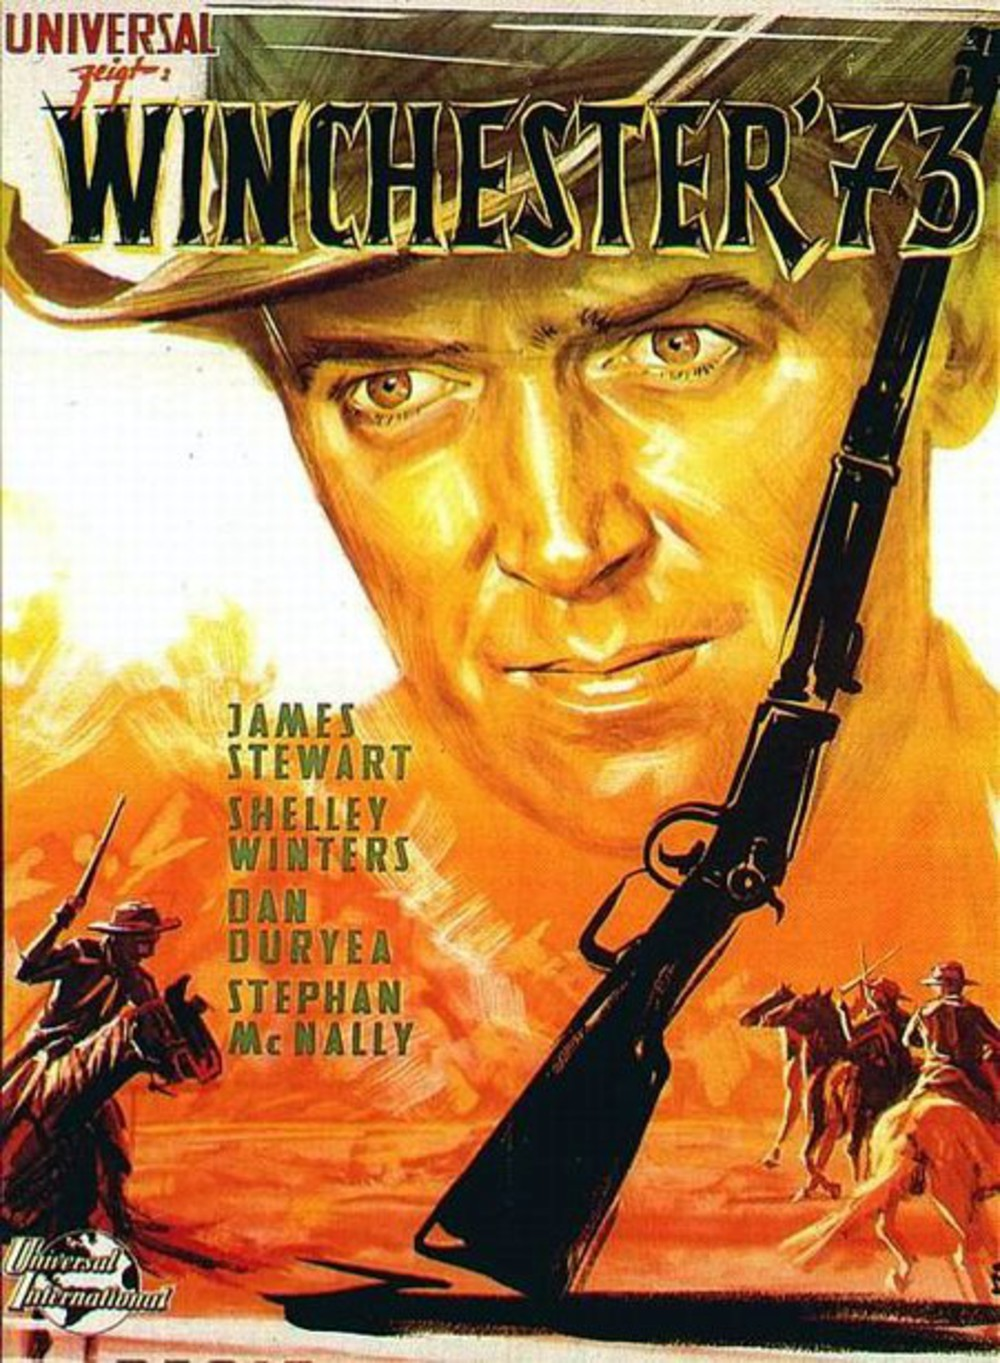 Image result for WINCHESTER '73 1950 movie